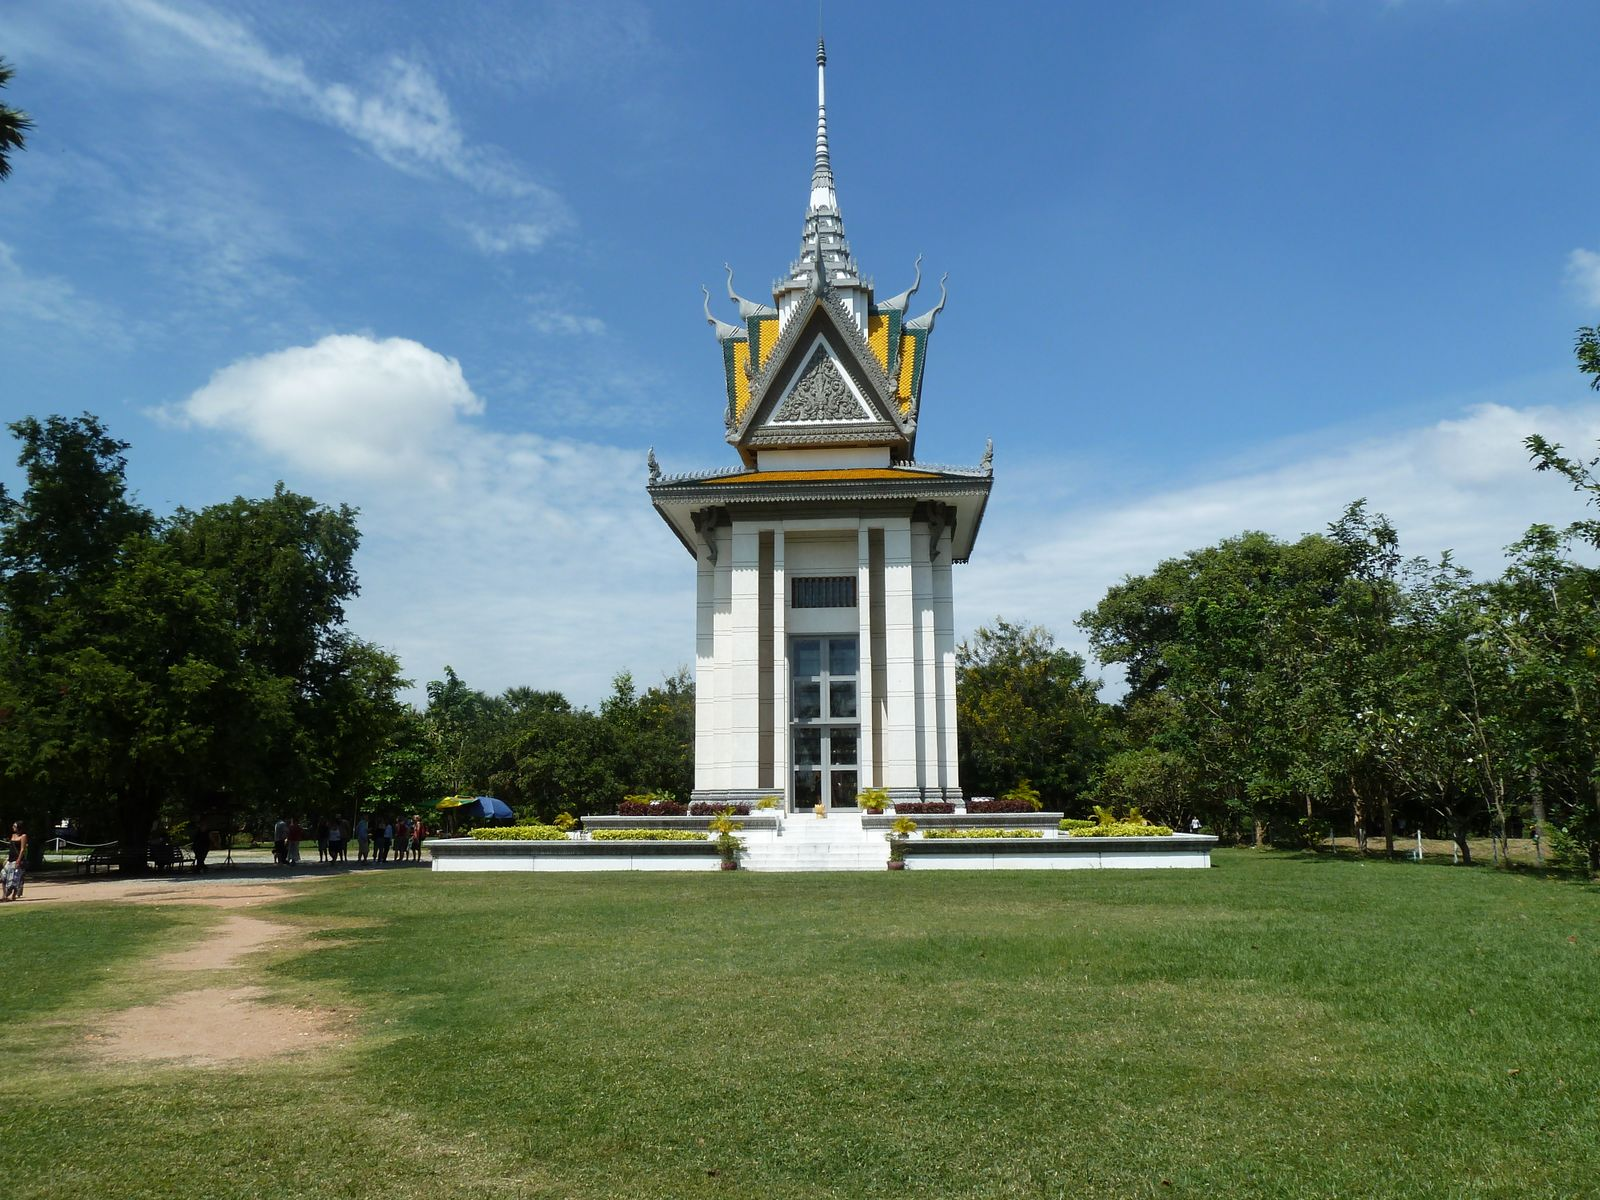 The-Killing-Fields-Memorial-Stupa-in-Phnom-Penh-Cambodia